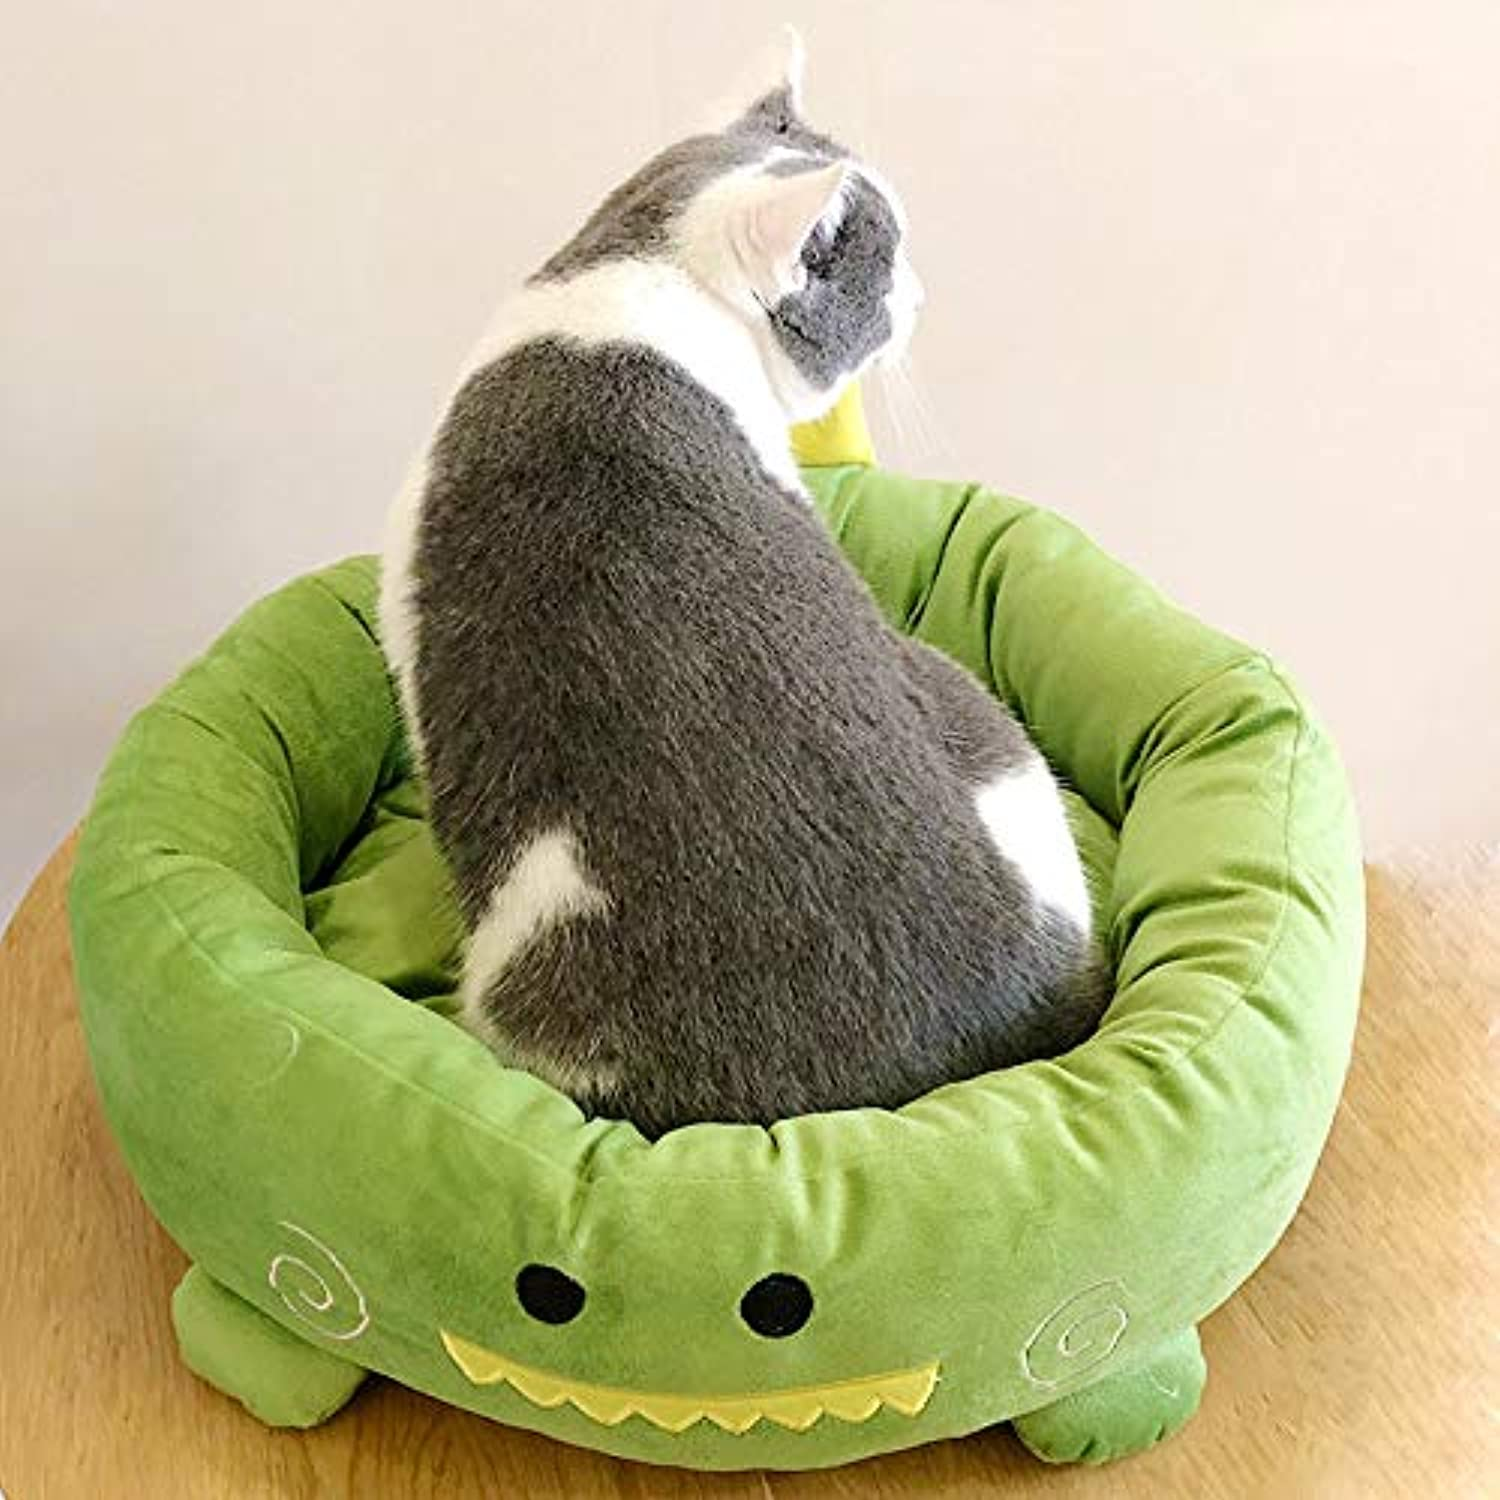 MARIS Autumn winter cartoon style cute popular puppy kennel Teddy warm removable washable round dog nest cat bed nest,Green,L 56  15 cm